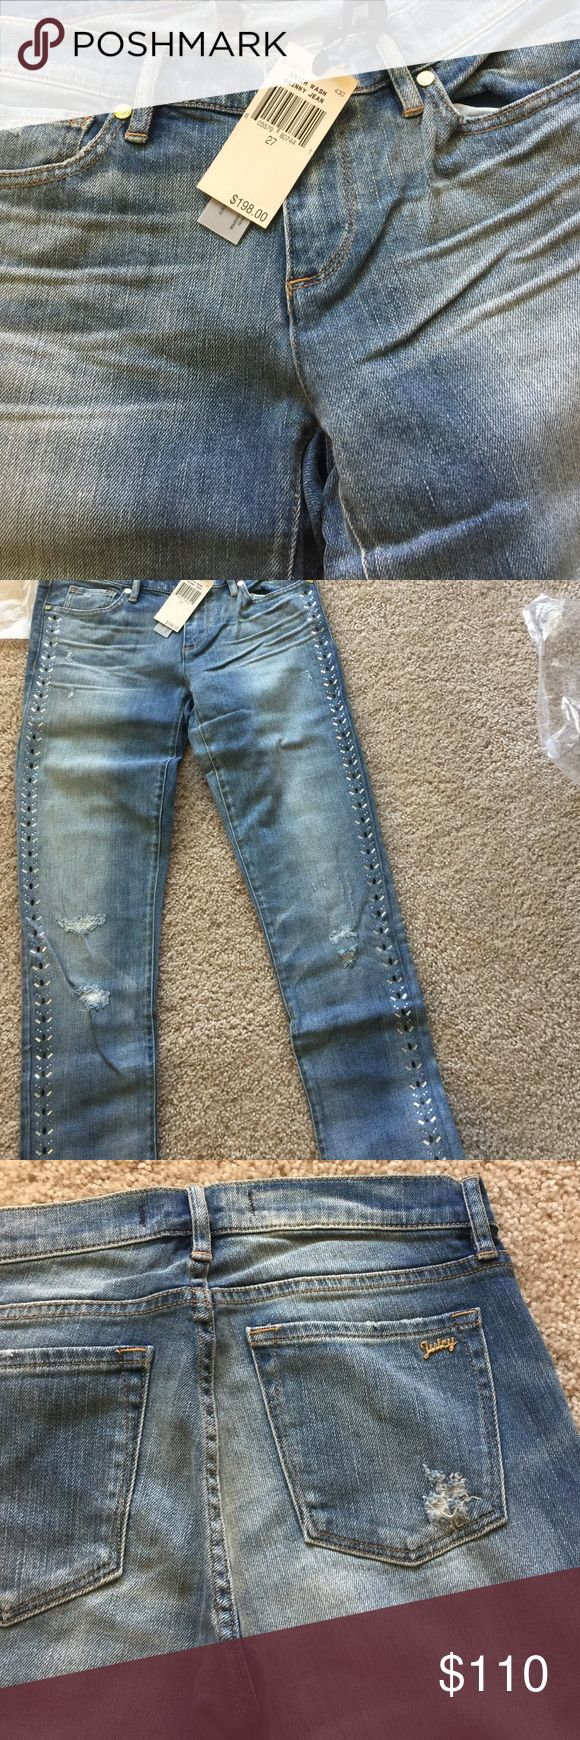 Skinny jeans Smith wash skinny jean Juicy Couture Jeans Skinny